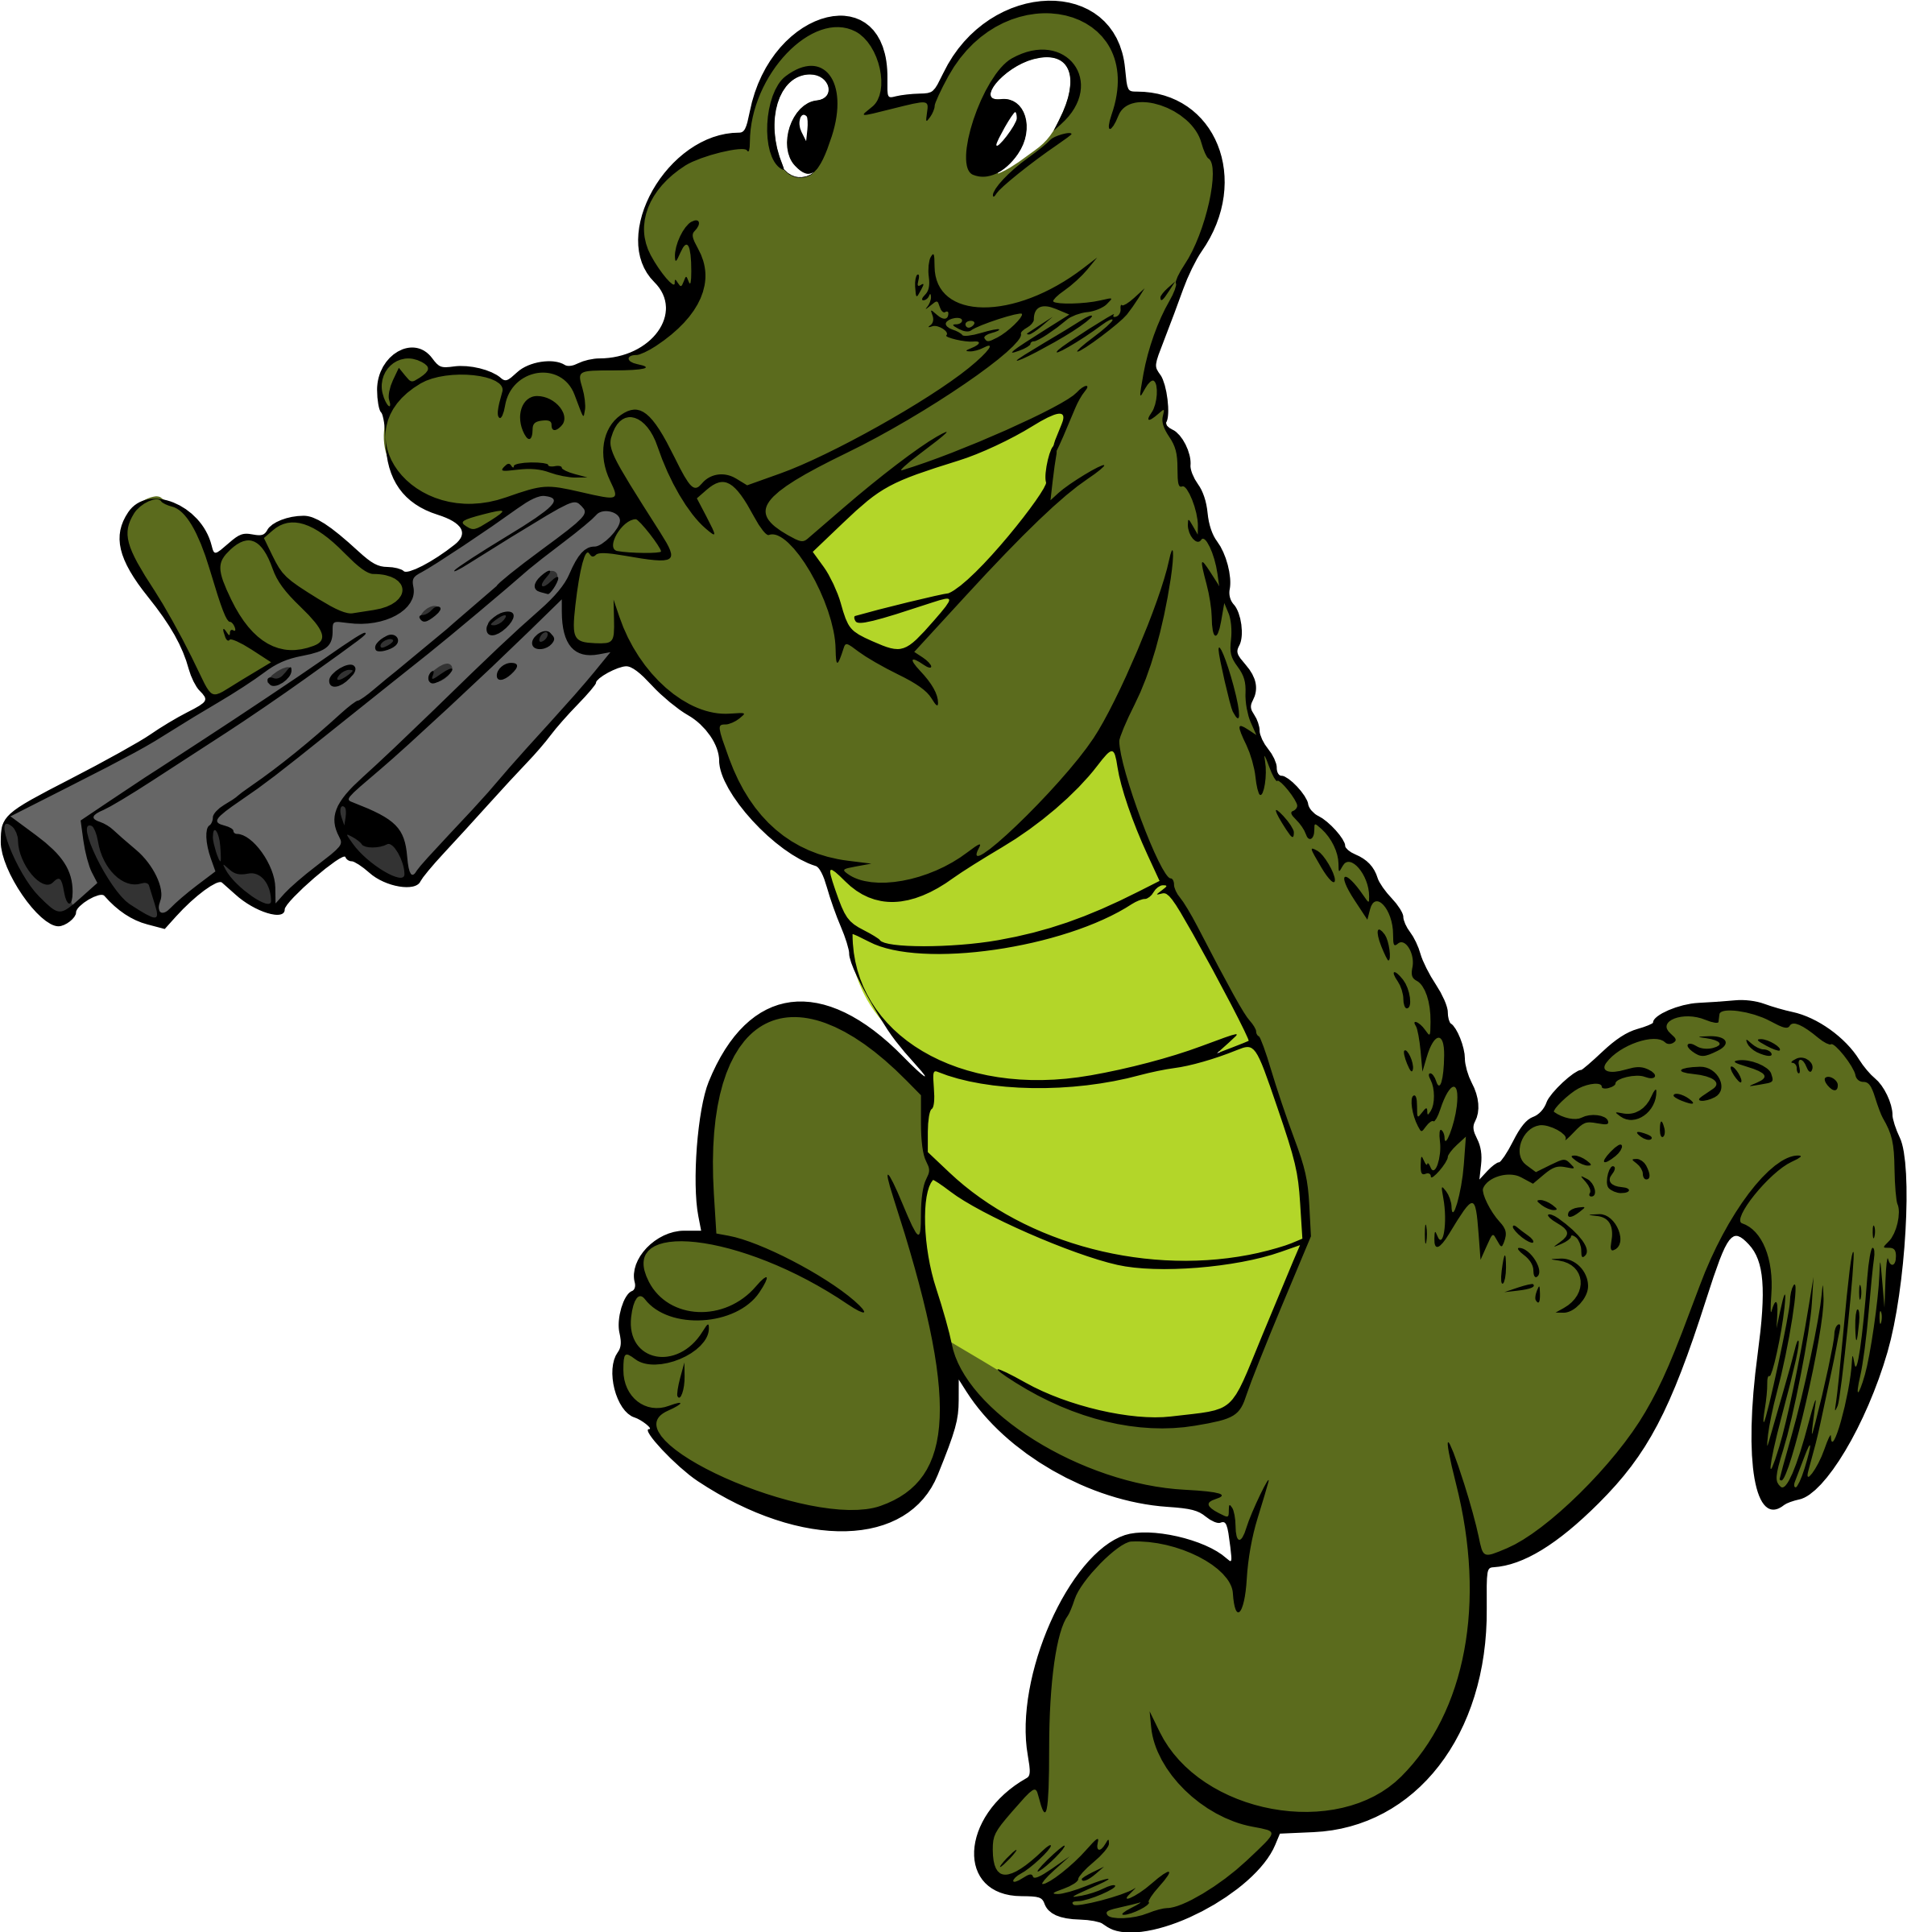 Transparent alligator colored. Musical crocodile colour icons